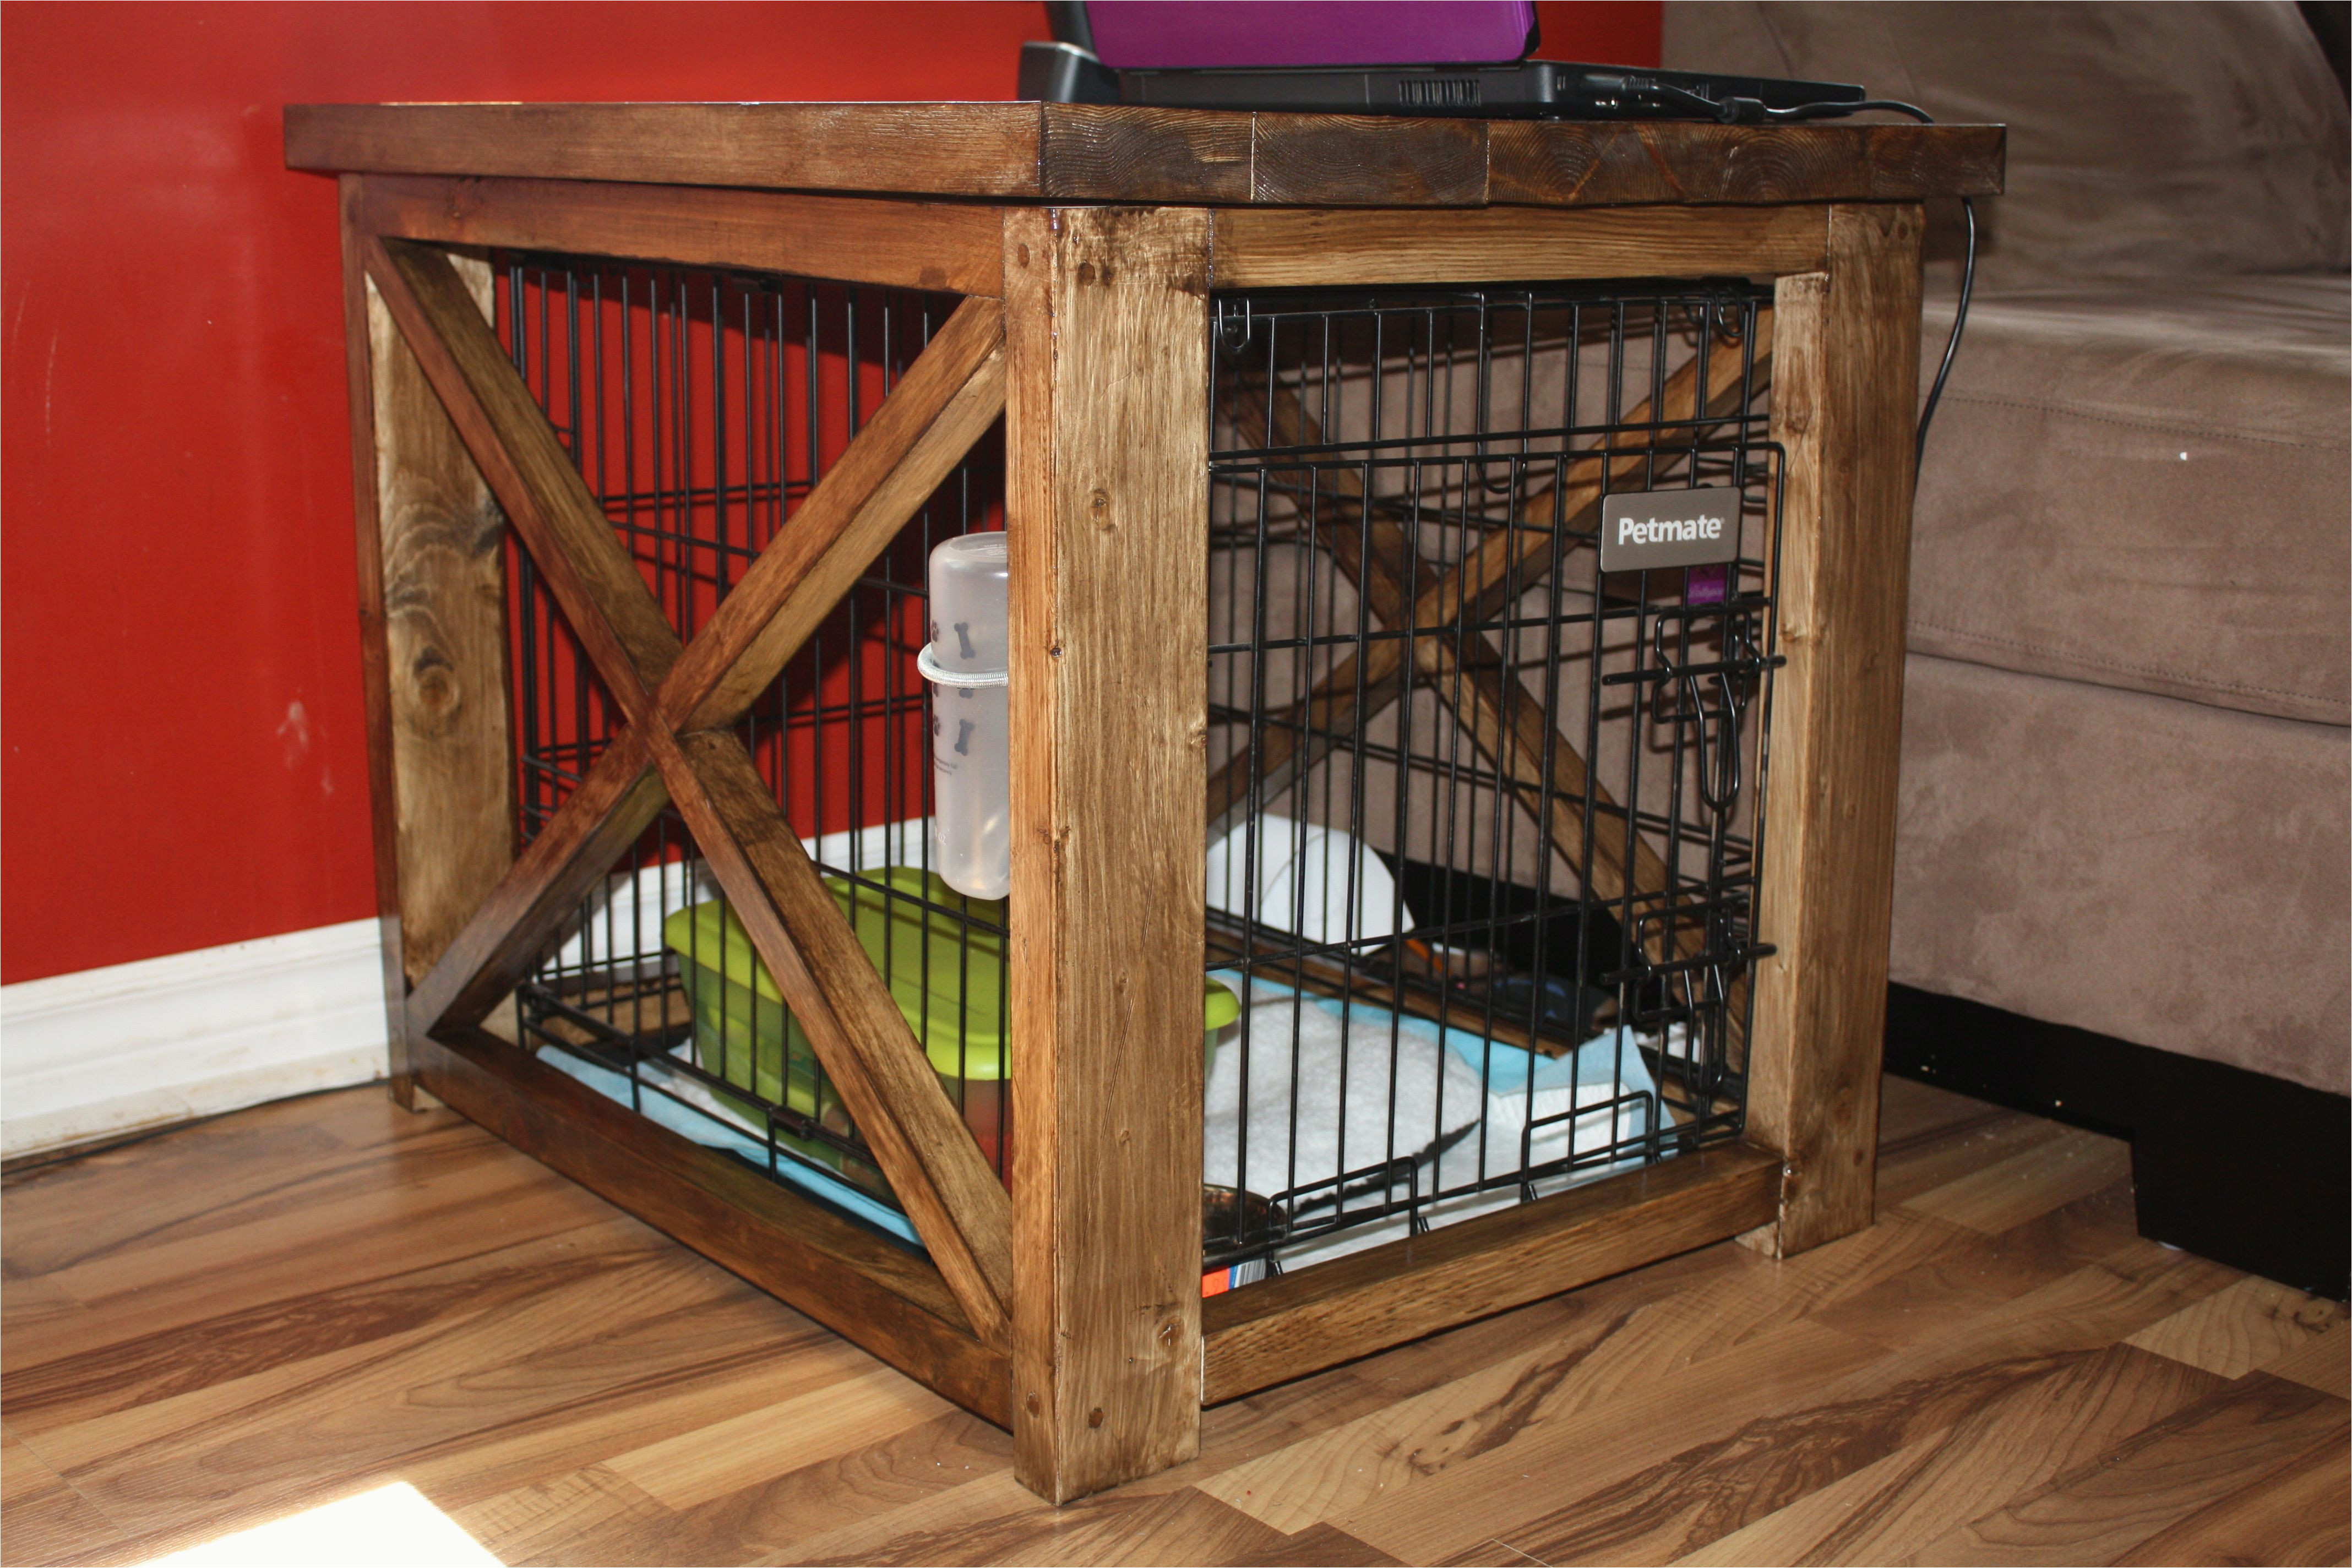 diy dog house end table crate furniture plans car design today kennel ashley larkinhurst earth sofa reviews unfinished knoxville carpet specials ethan allen office outdoor fans